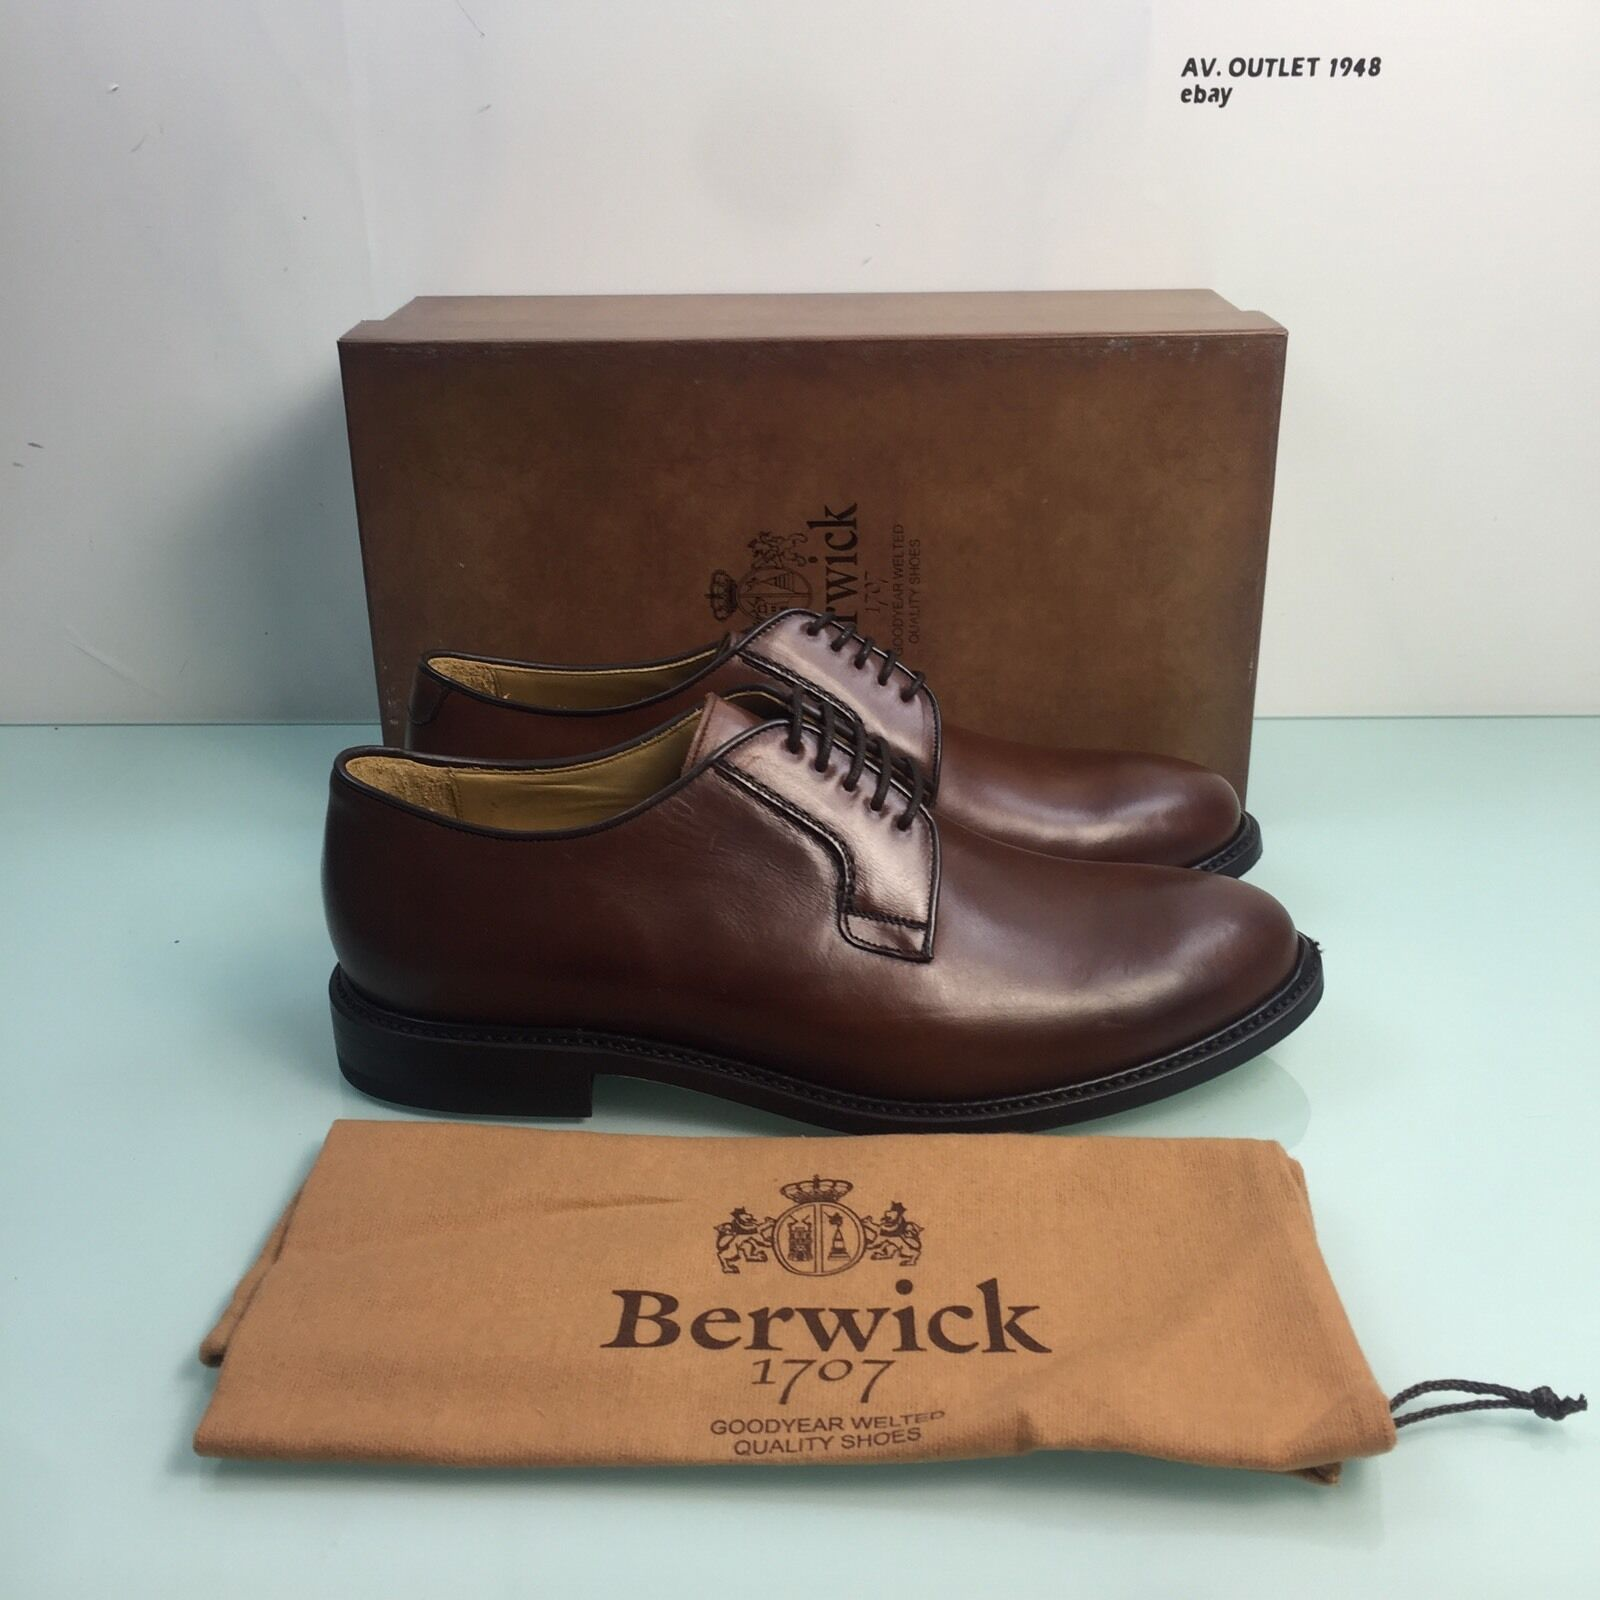 Chaussure Berwick 1707 Hombre Goodyear Welted